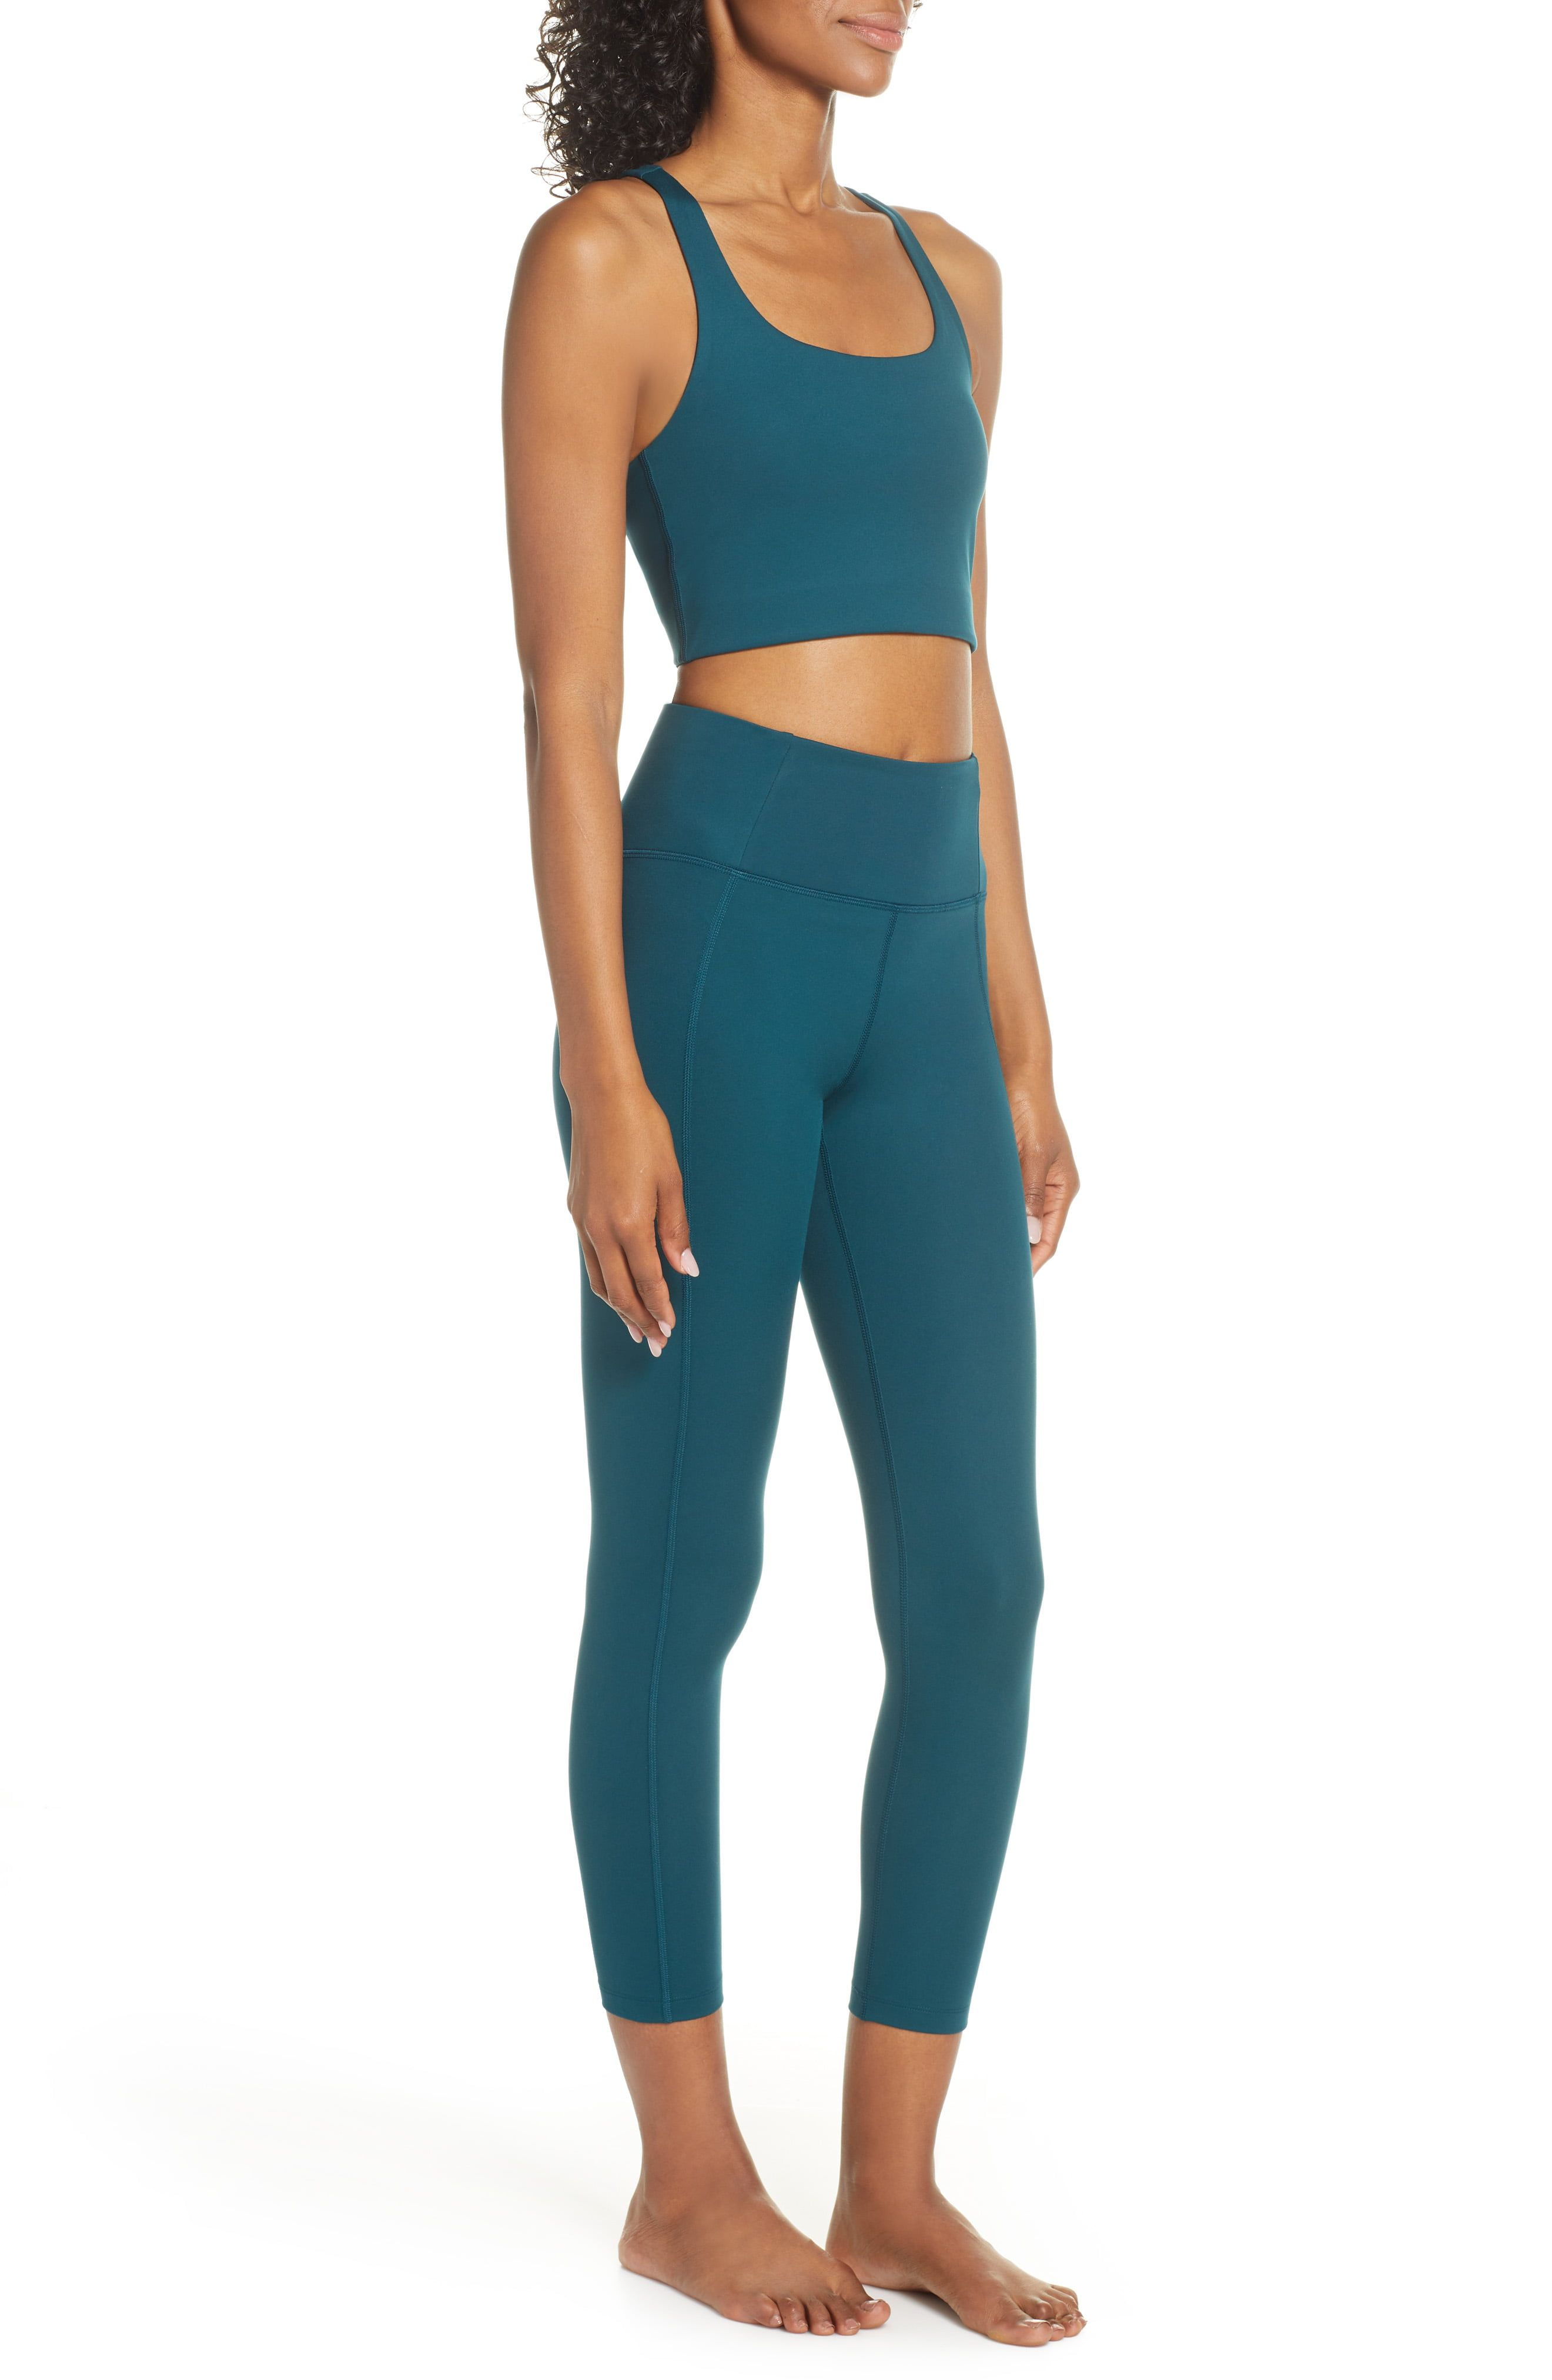 Paloma Sports Bra Girlfriend Collective nordstrom.com $38.00 SHOP NOW Everyday is Earth Day at Girlfriend Collective. You know the old water bottles and fishnets you likely see at your local beaches?